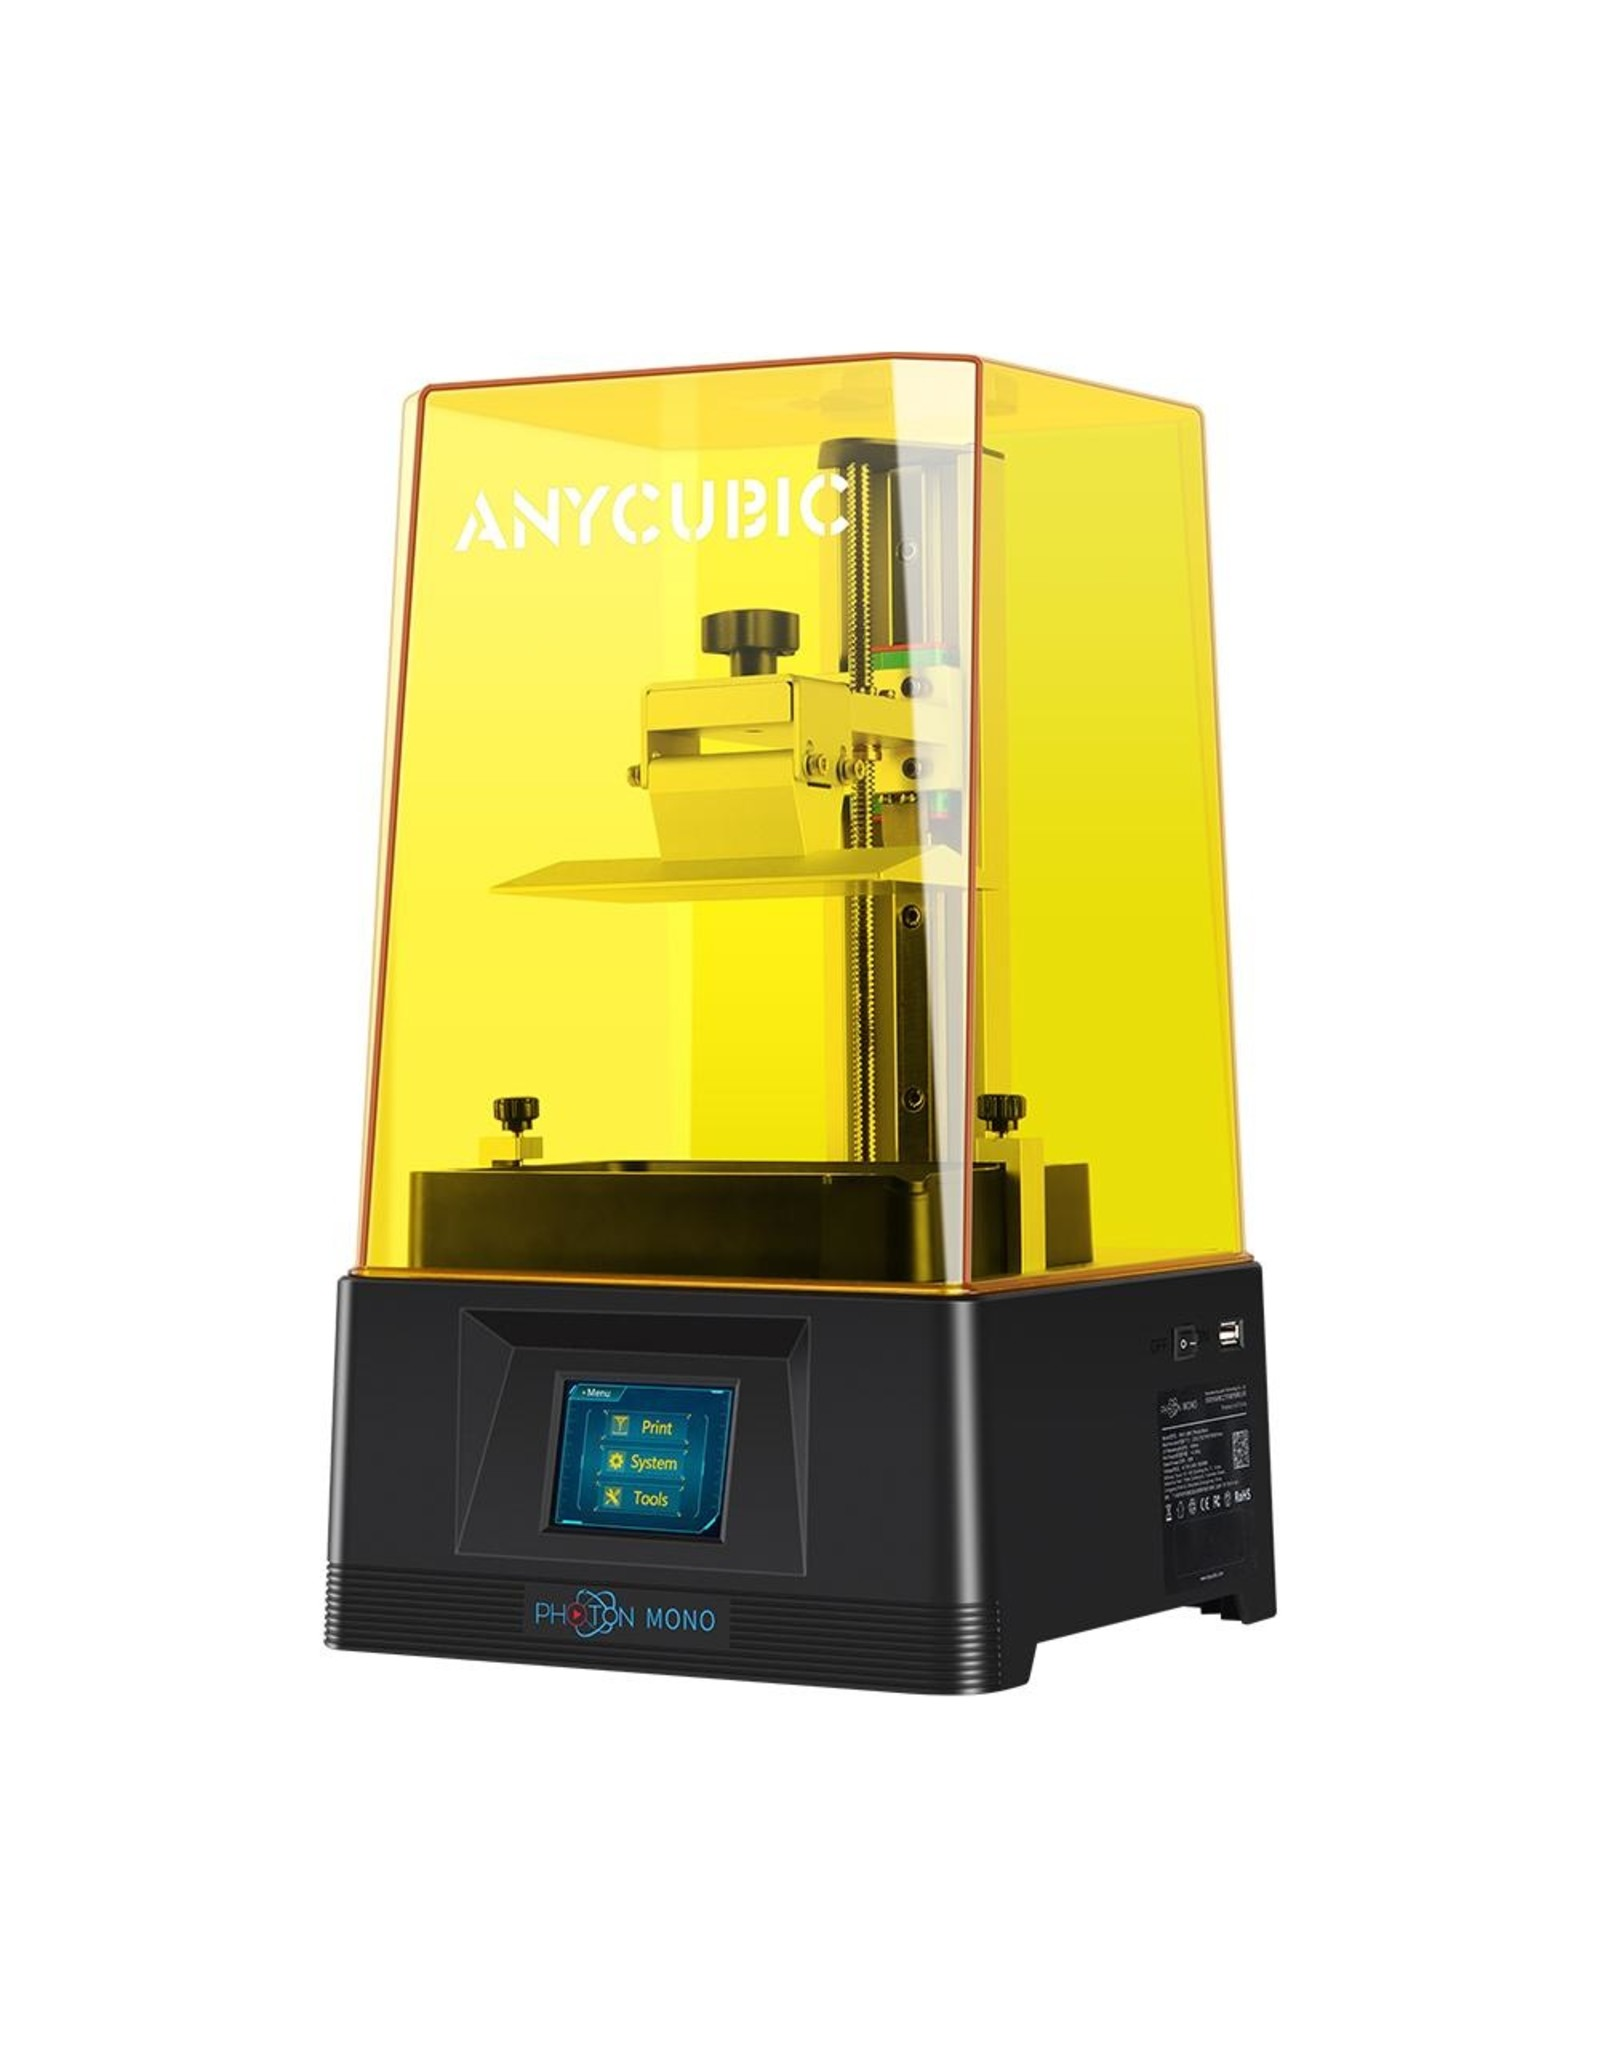 Anycubic Anycubic Photon Mono